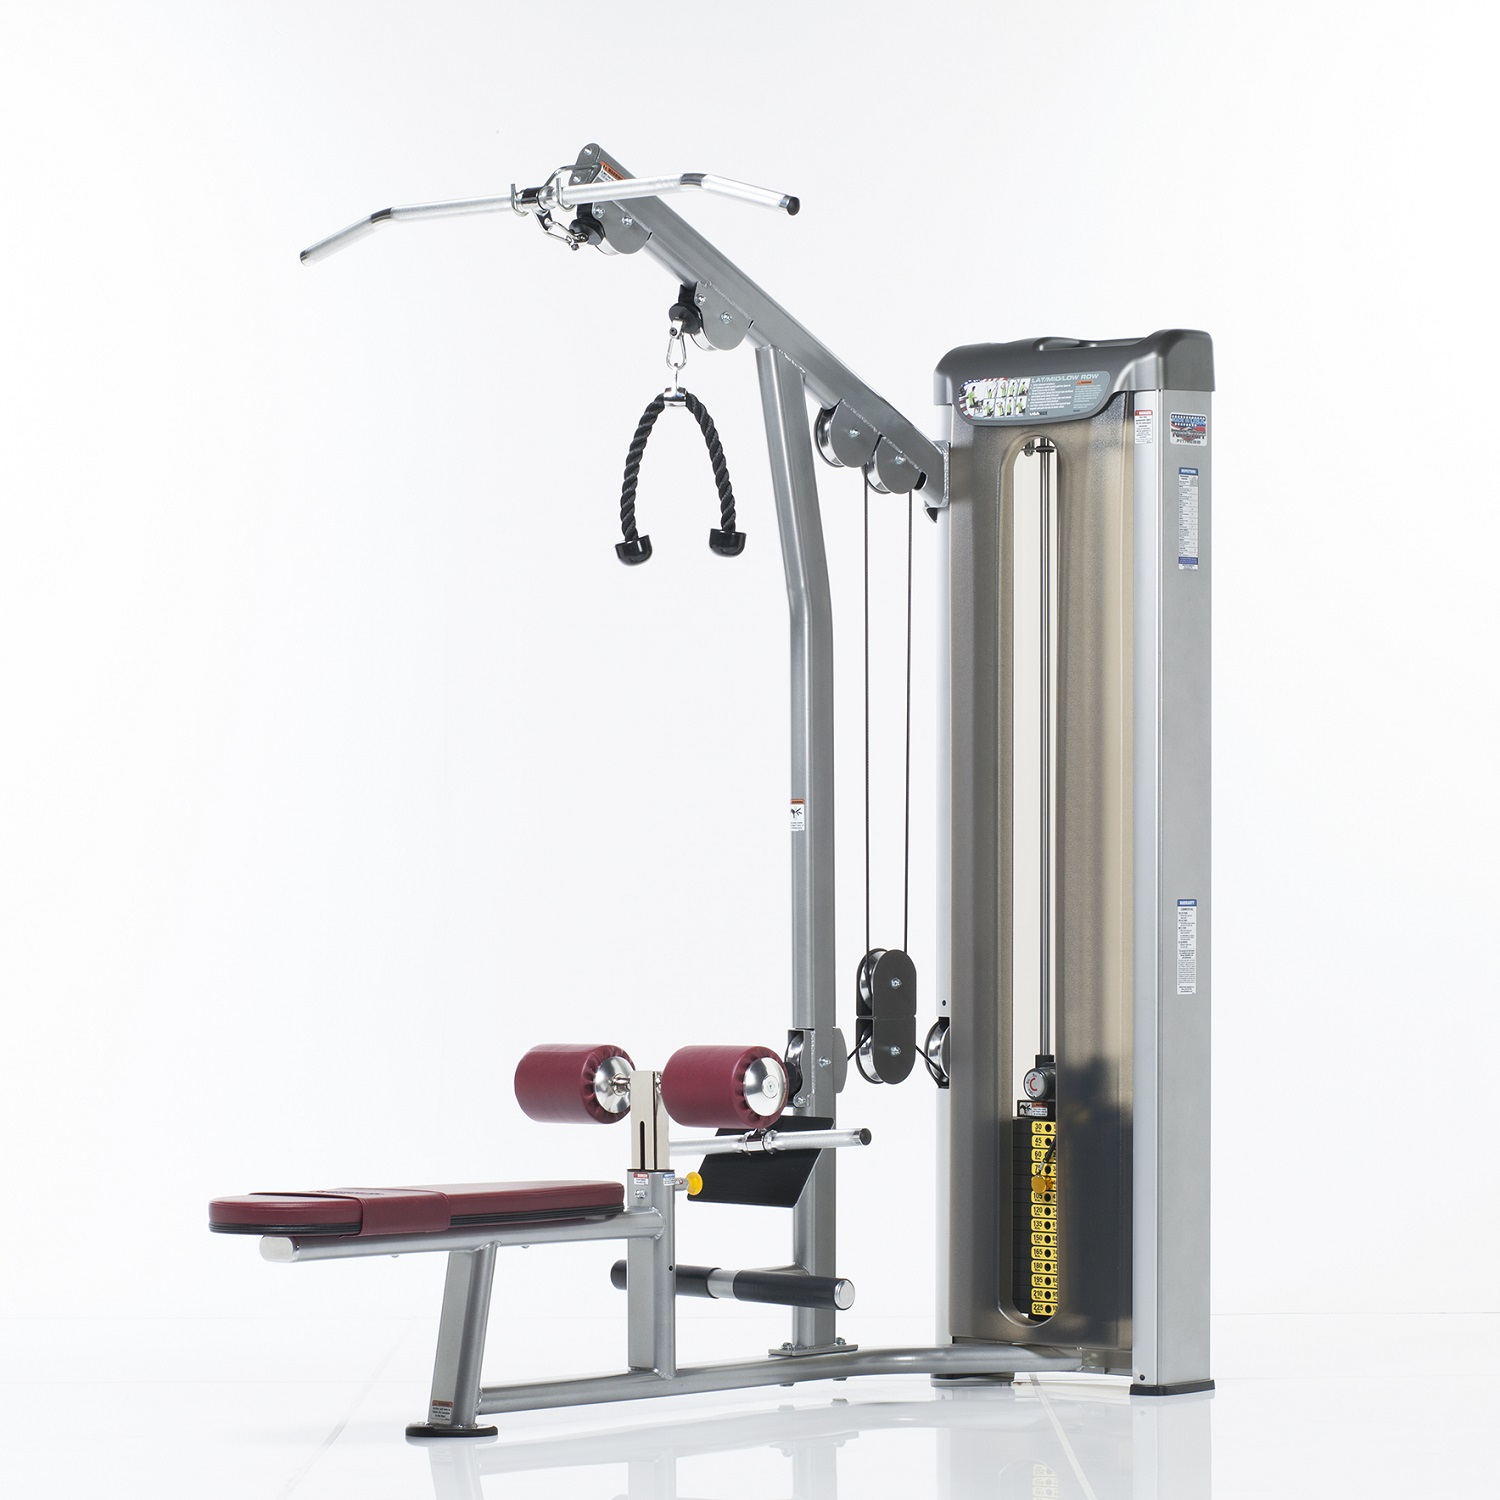 PPD-802 Lat/Mid Row Machine